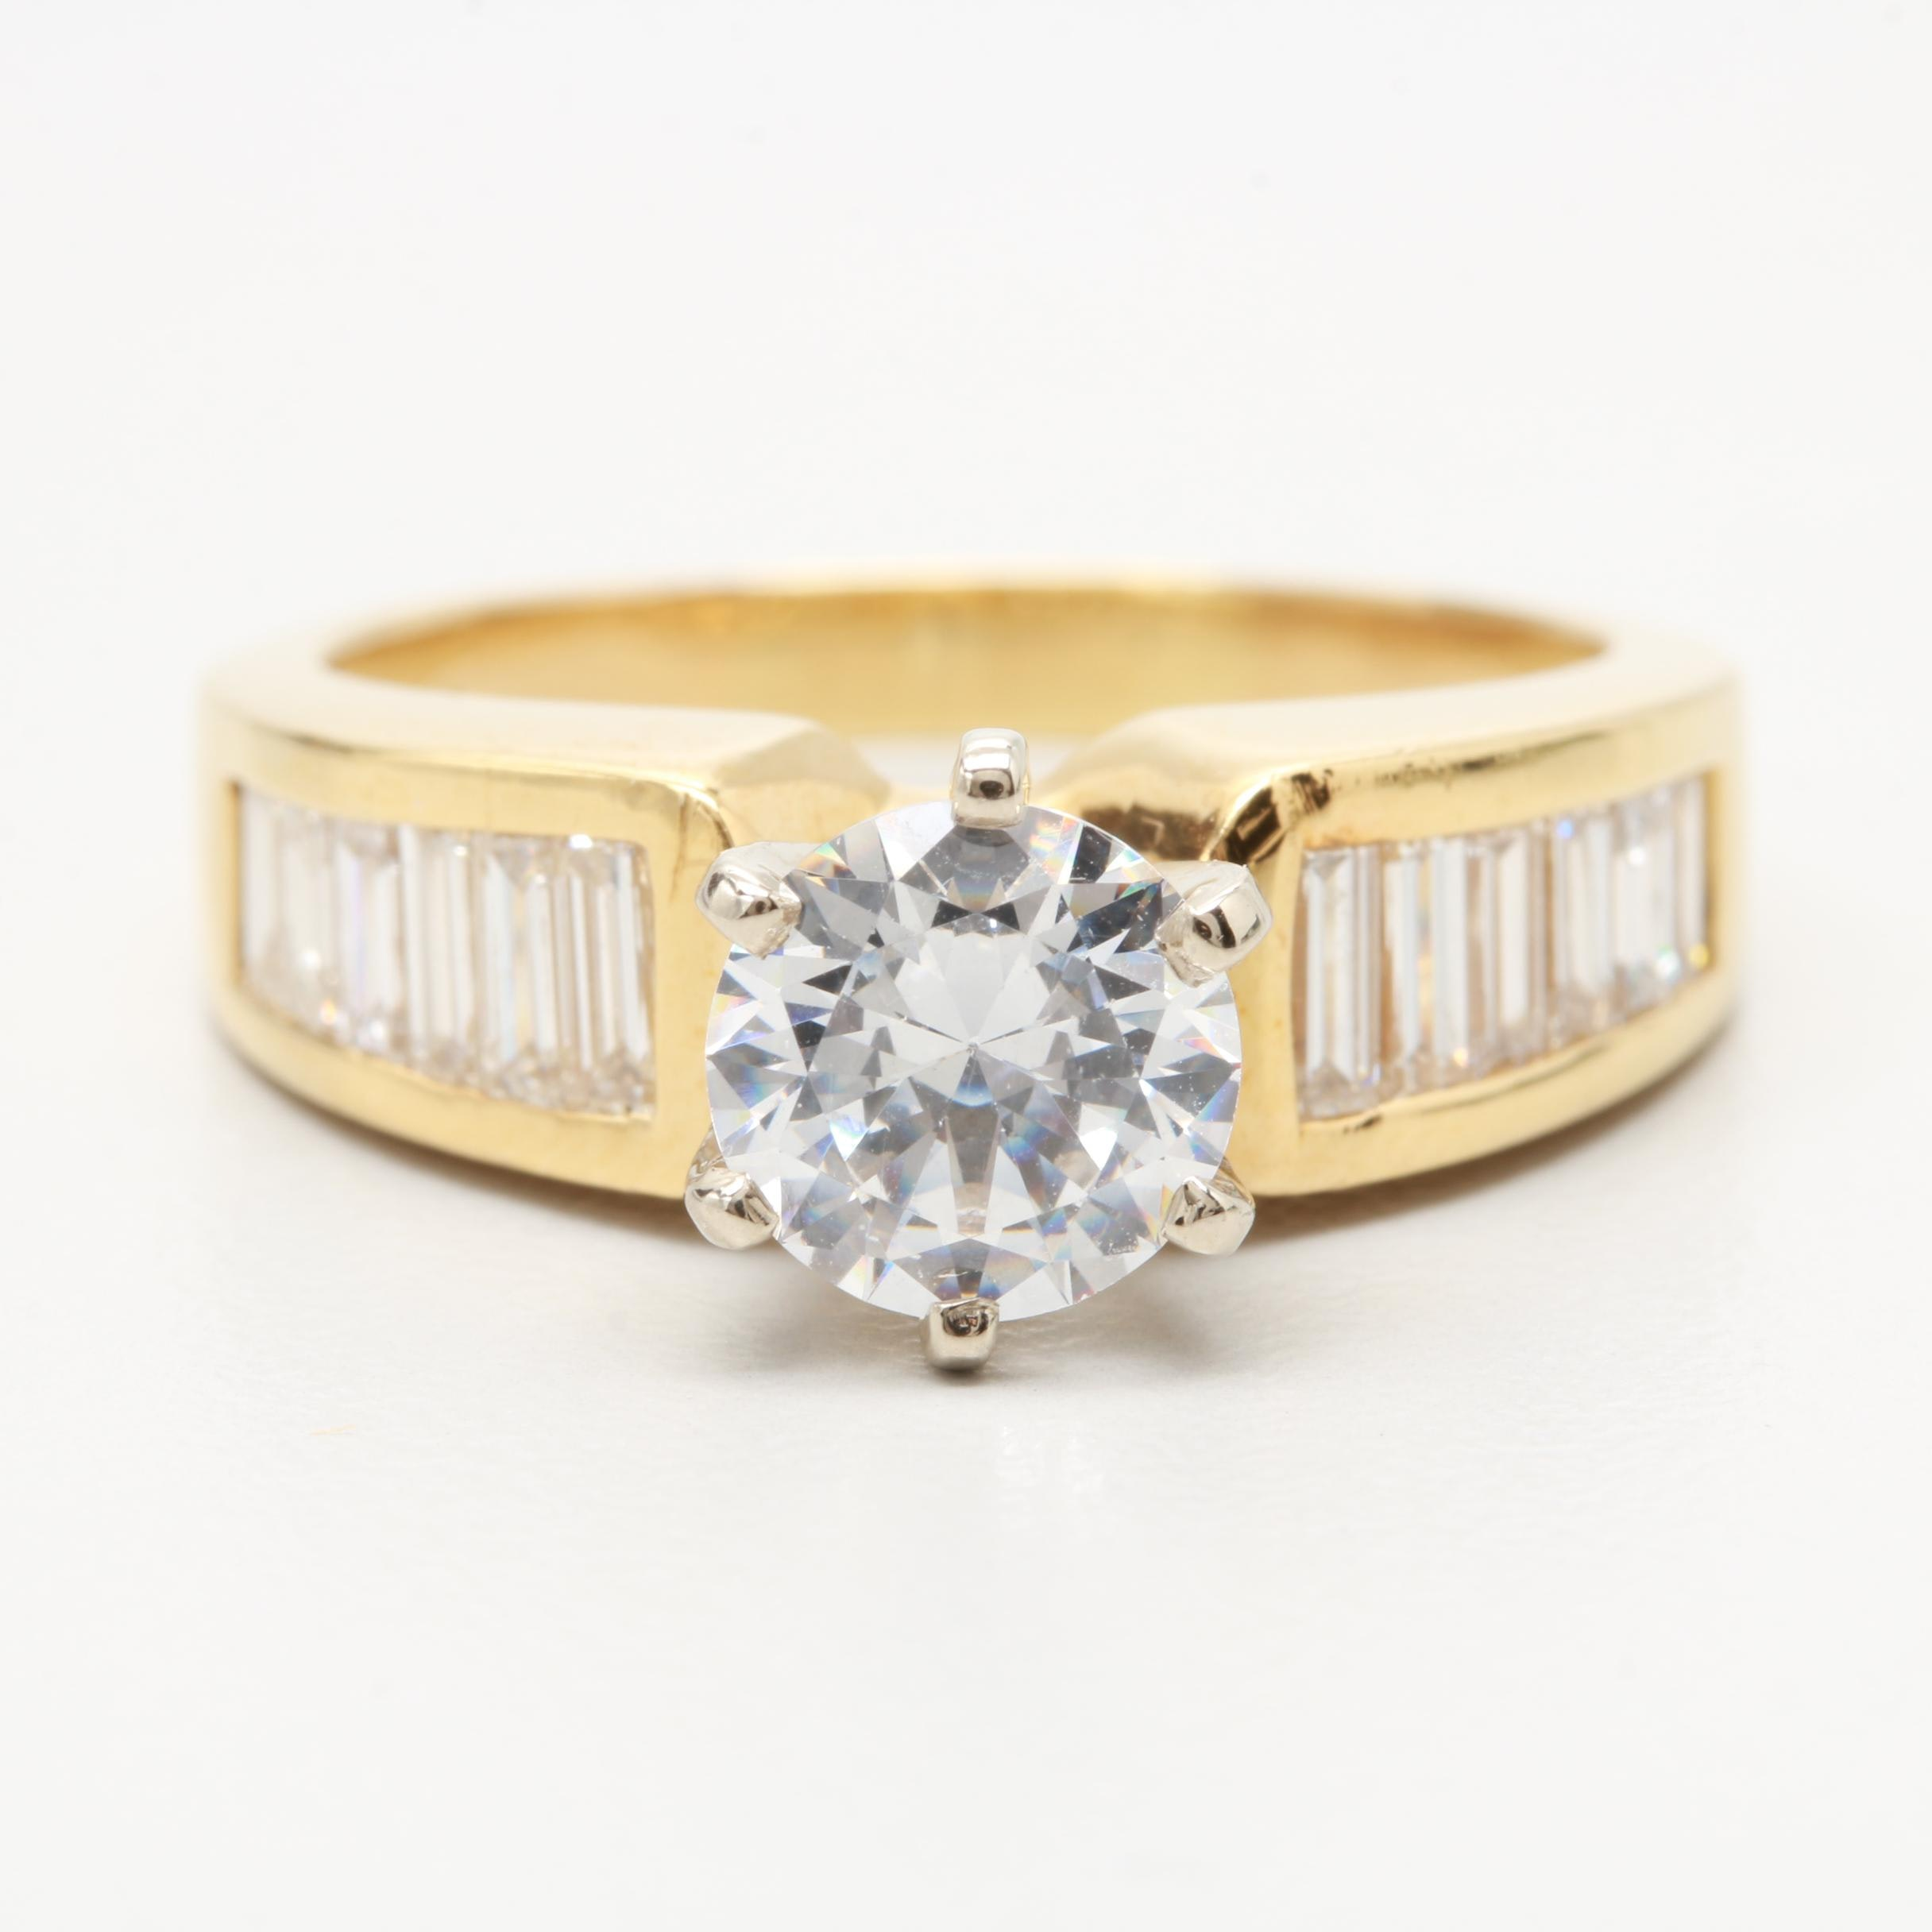 14K and 18K Yellow Gold 1.00 CTW Diamond Semi-Mount Ring with Cubic Zirconia